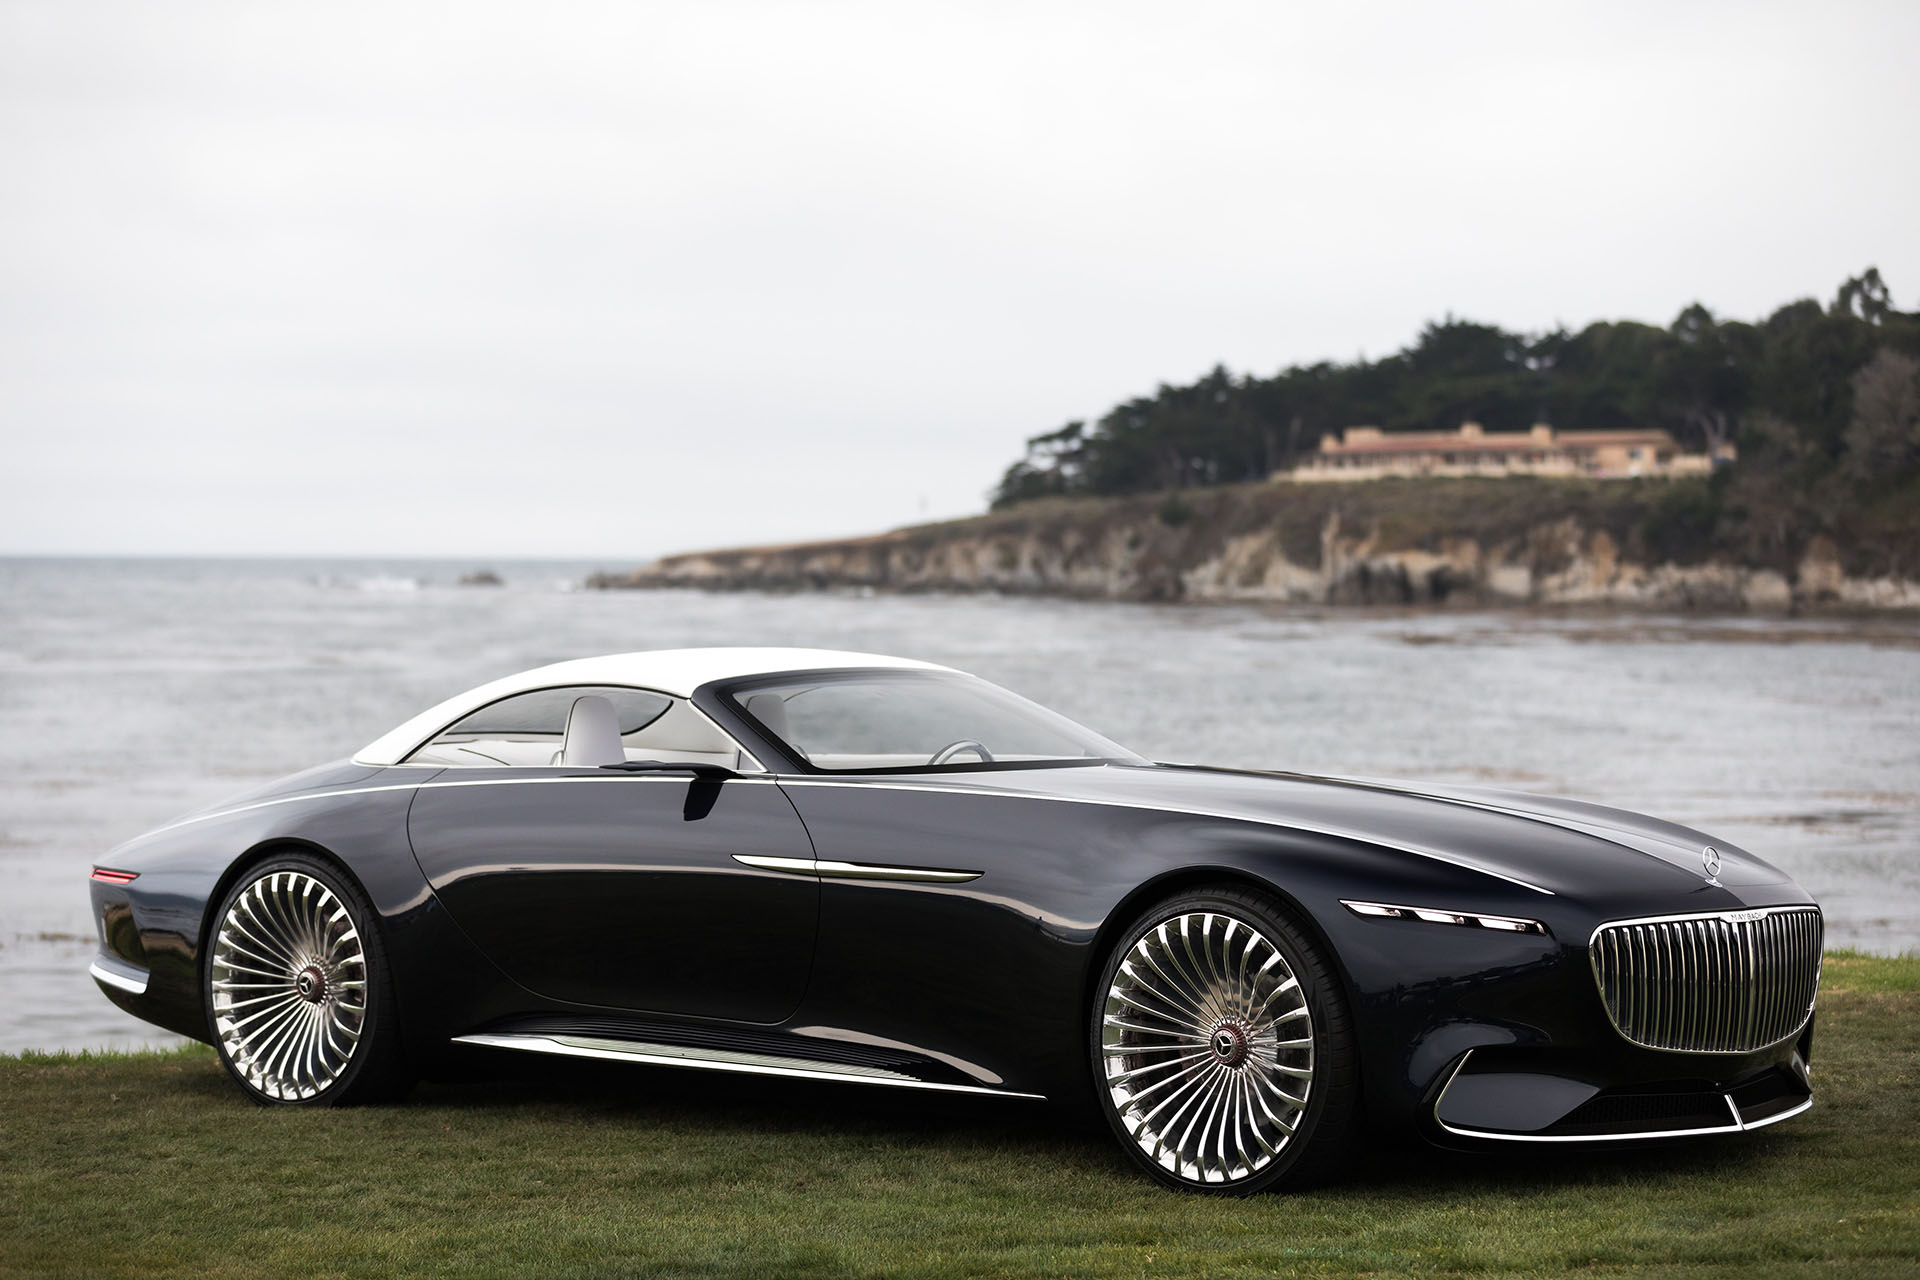 2017 monterey the vision mercedes maybach 6 cabriolet previews the future in opulent open top. Black Bedroom Furniture Sets. Home Design Ideas